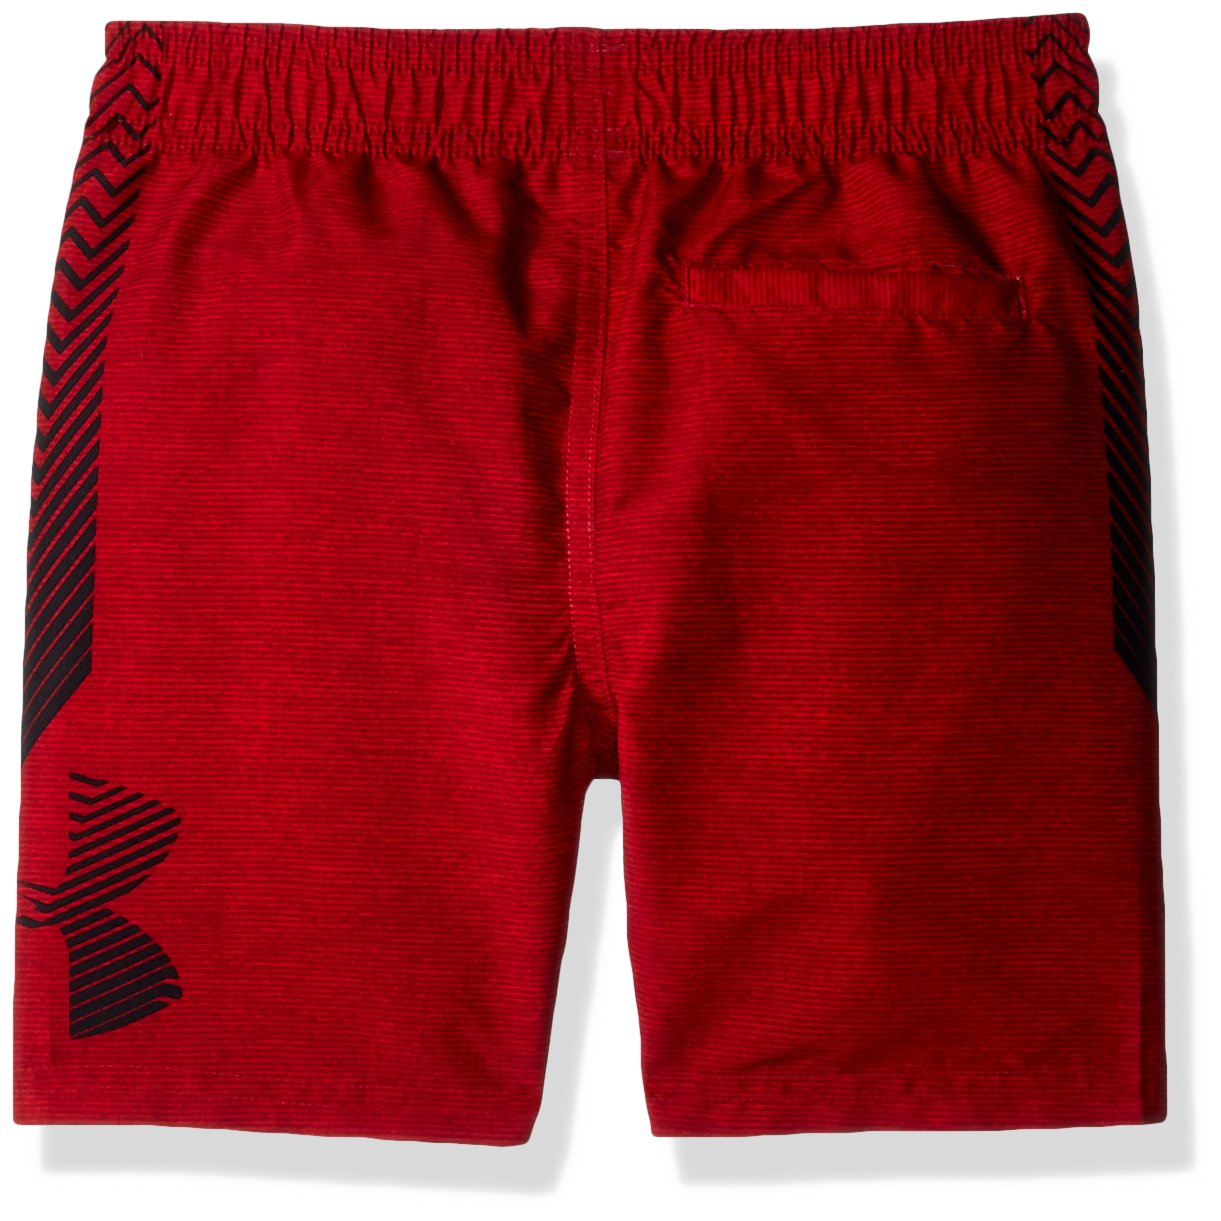 Under Armour Big Boys' Volley Swim Trunk, Americana Red, Small by Under Armour (Image #2)